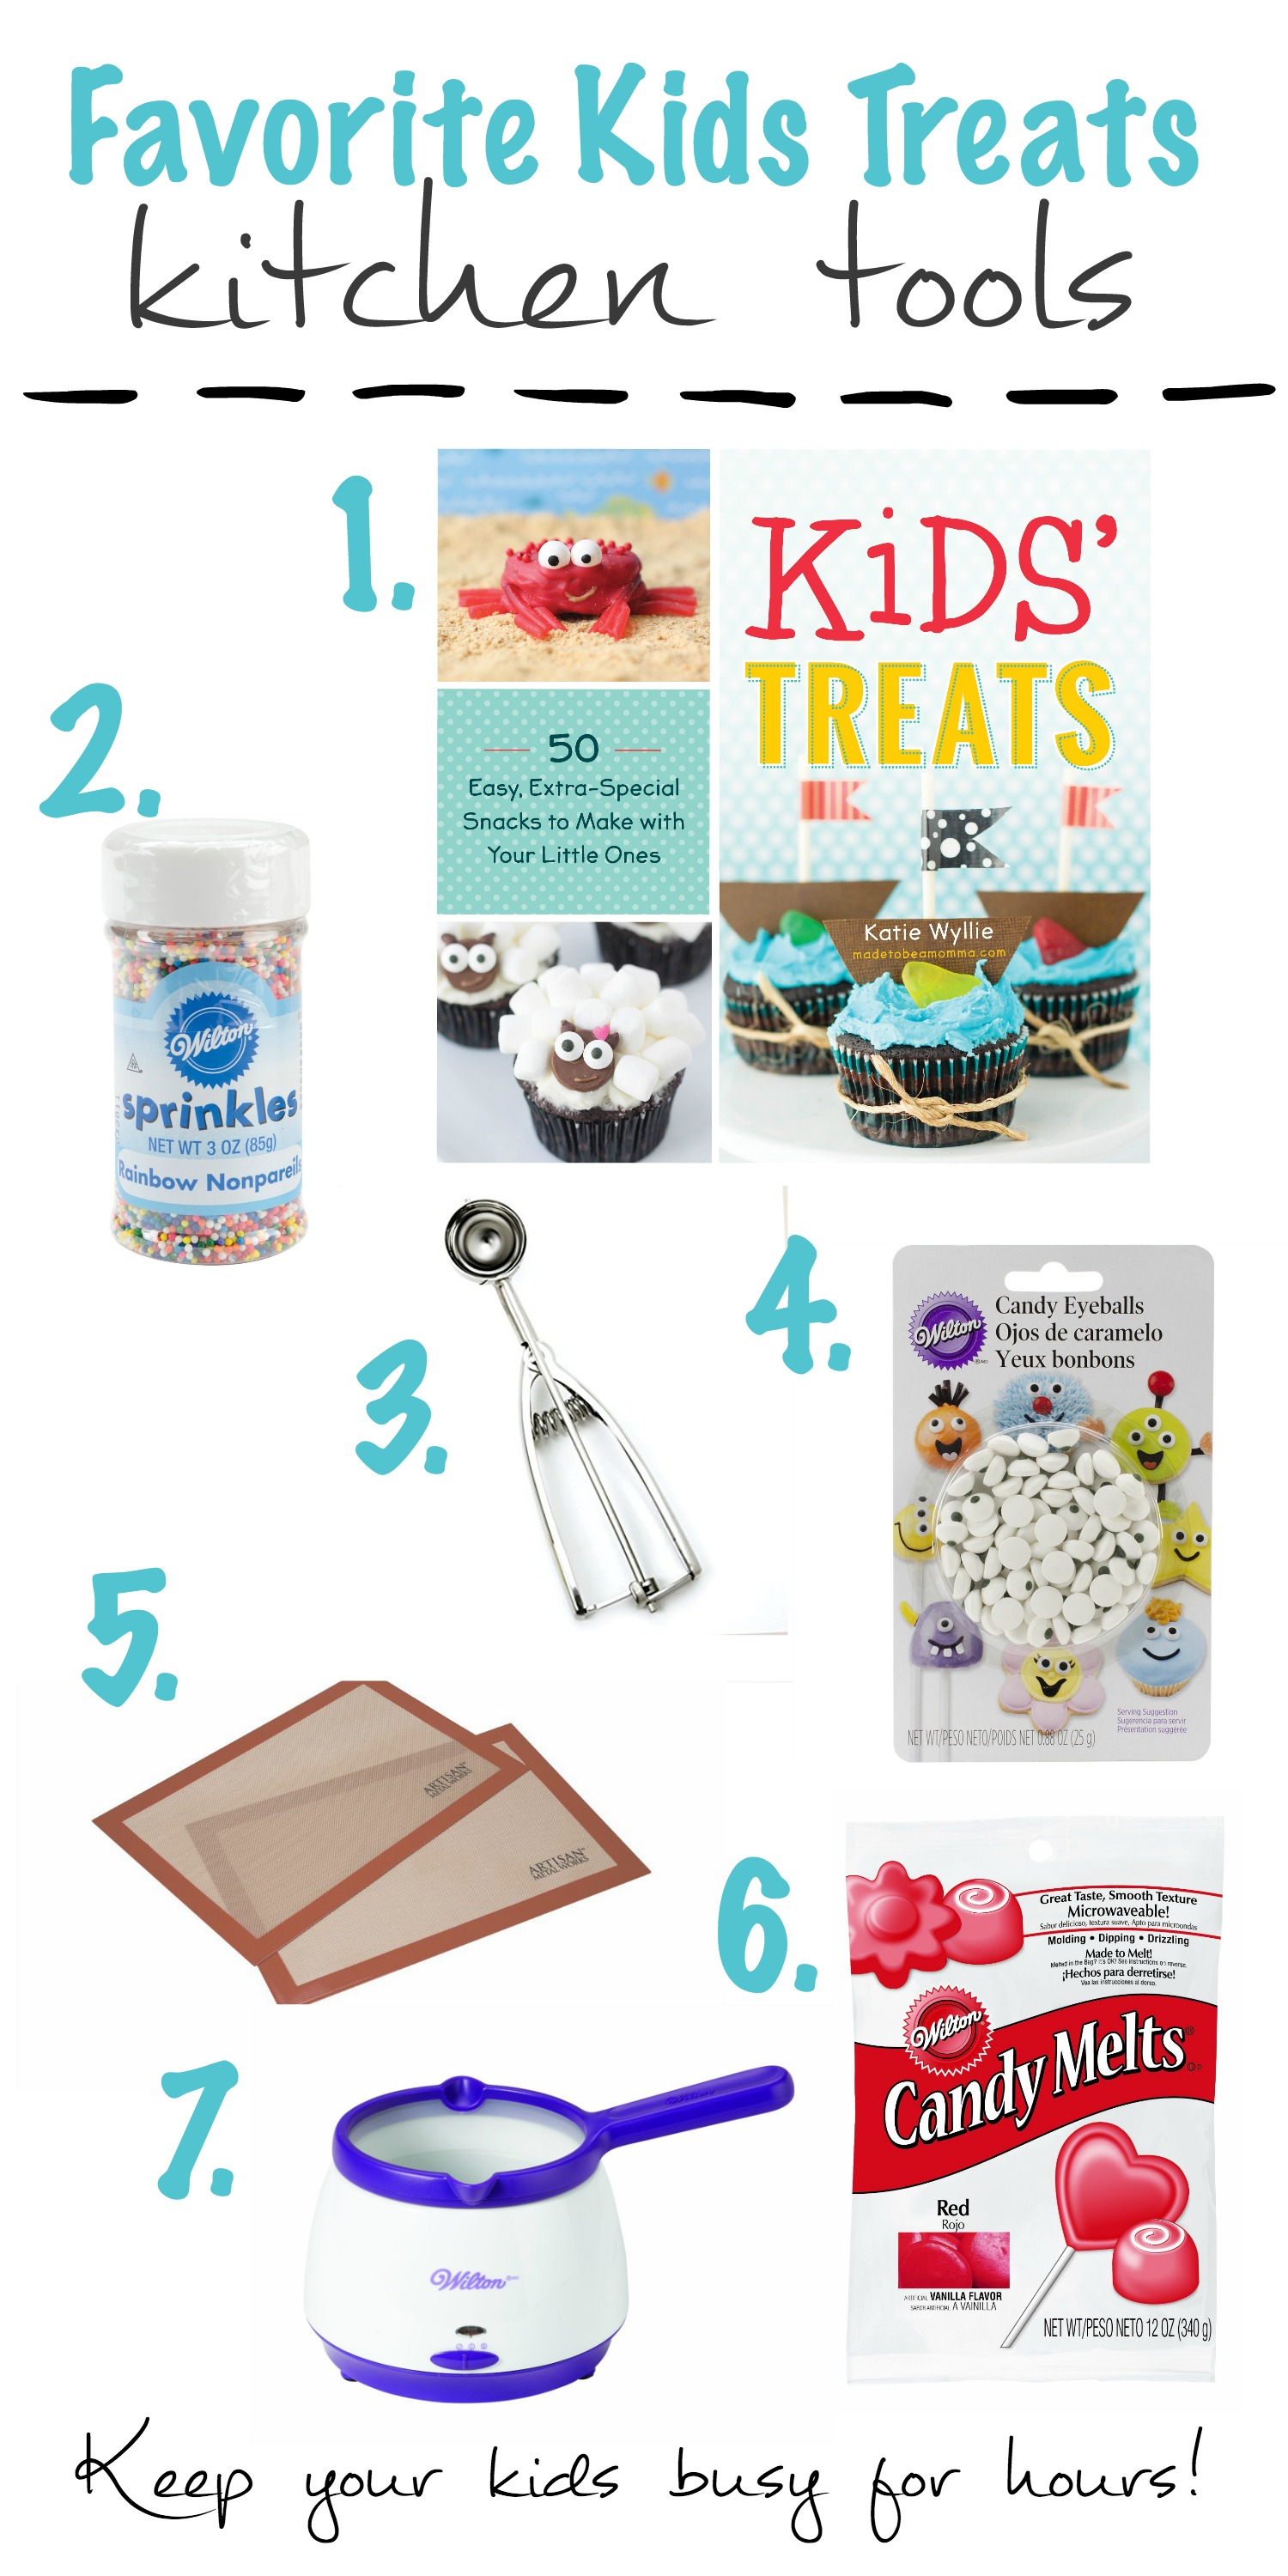 Favorite Kids Treats Kitchen Tools